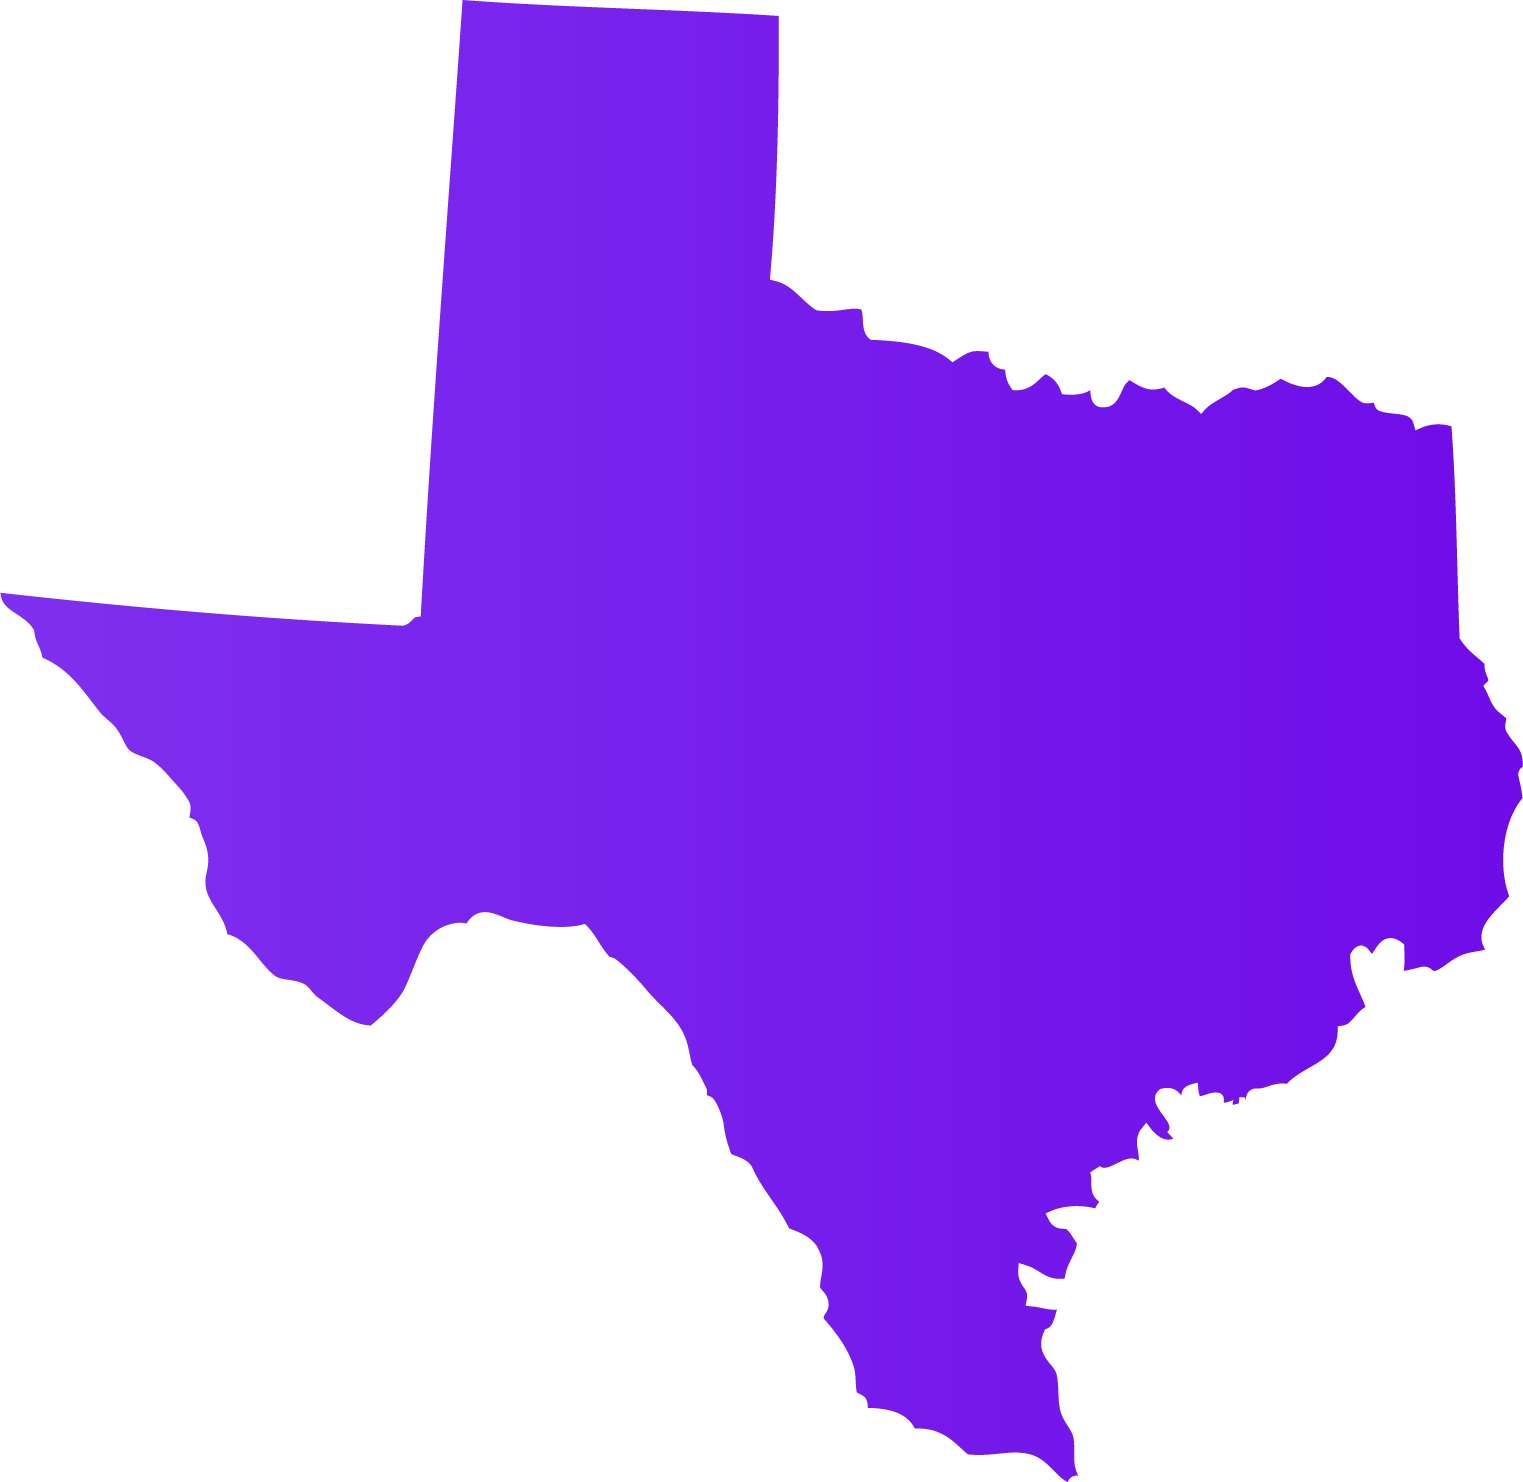 png royalty free download Free clip art image. State of texas clipart